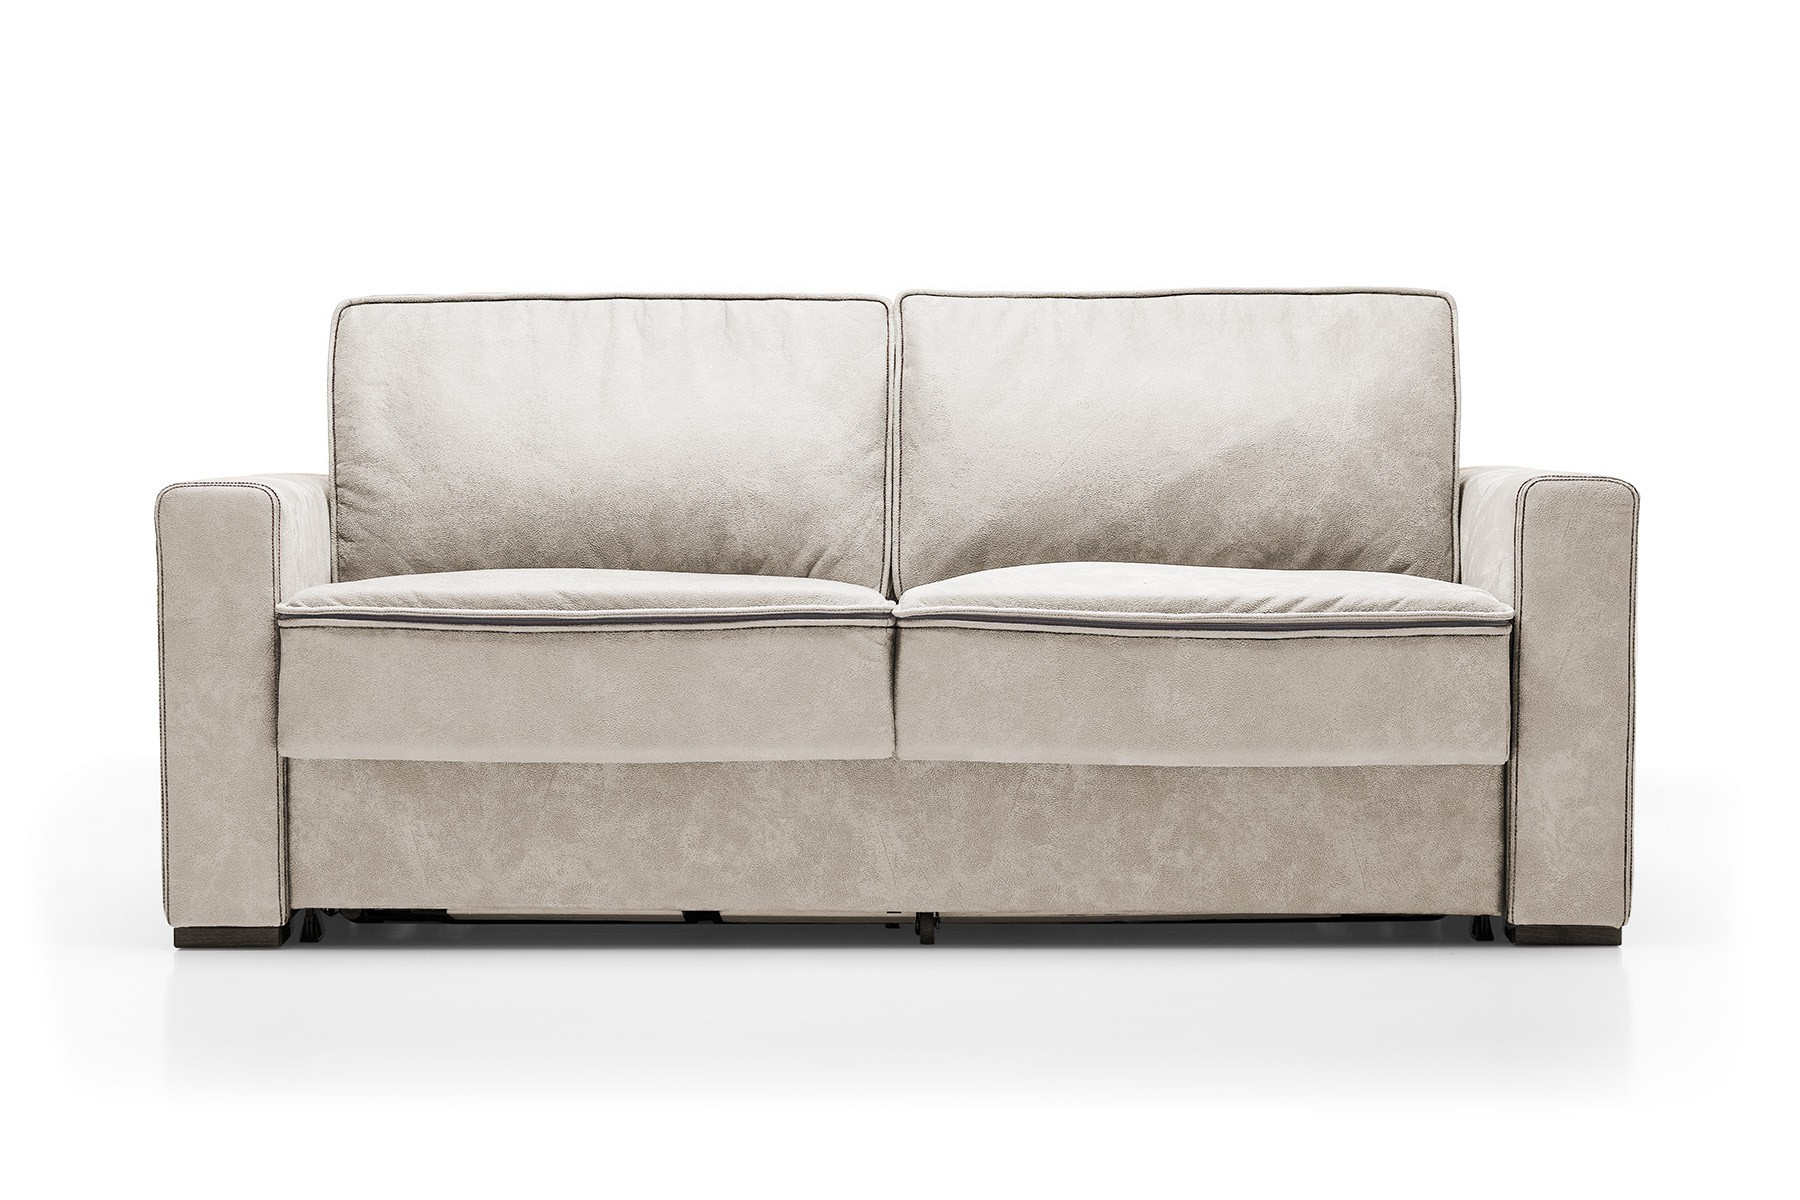 Bettsessel Federkern Sofa Bett Kombination Top Medium Size Of Schlafsofa Grau